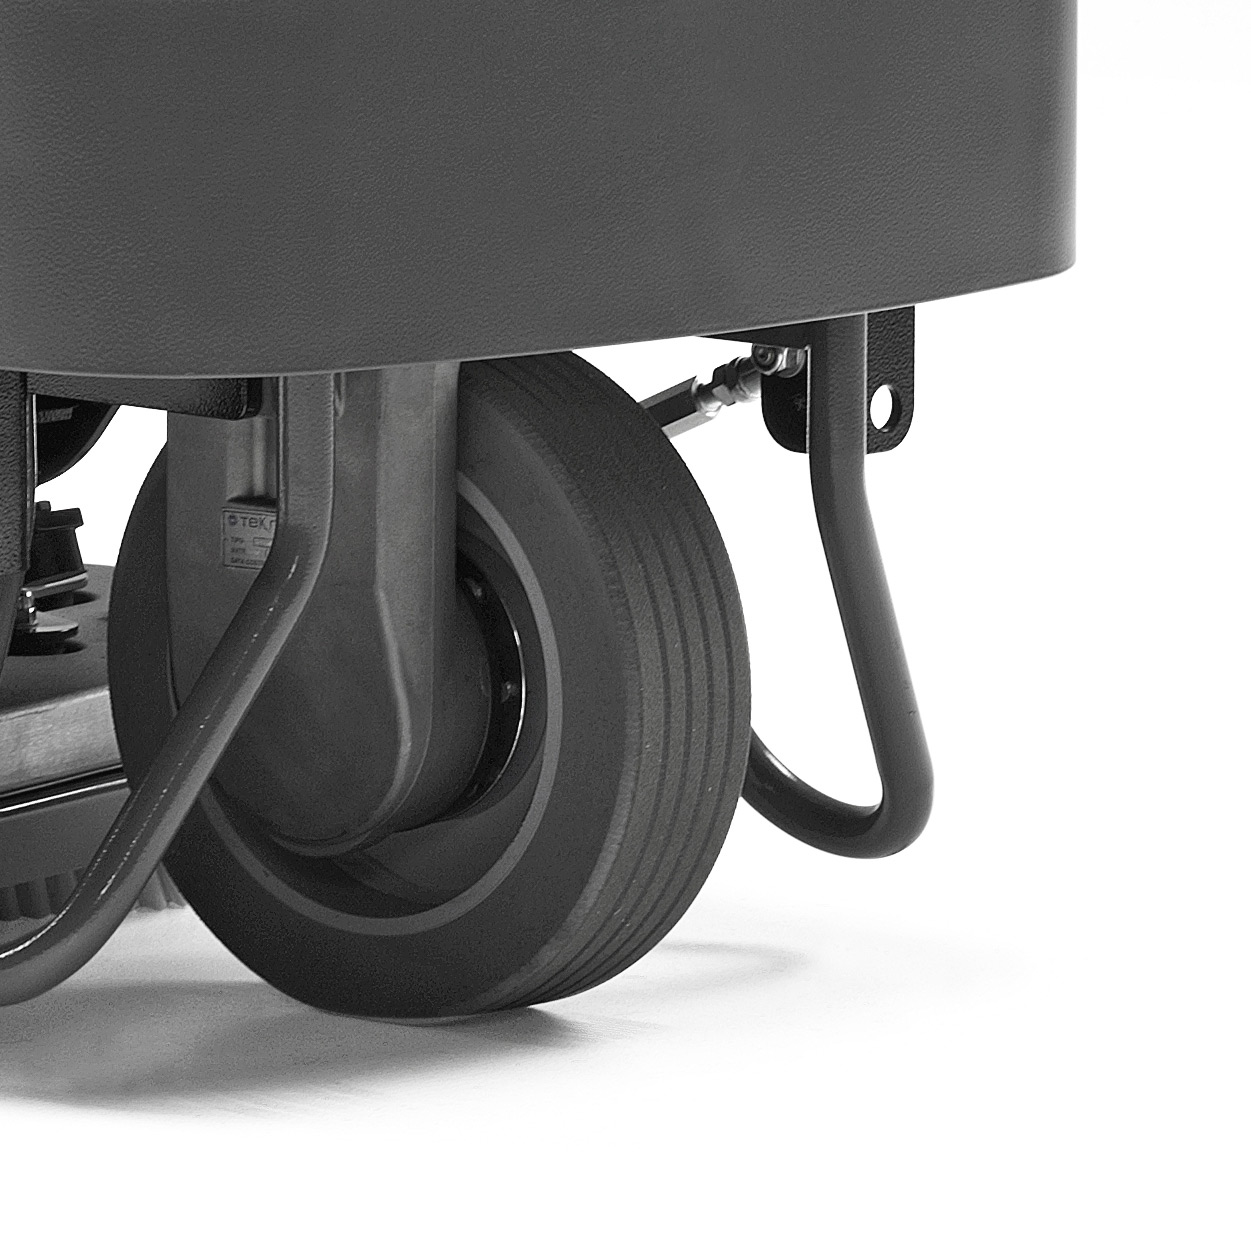 M850 RIDE-ON SCRUBBER REINFORCED FOR TOUGH ENVIRONMENTS